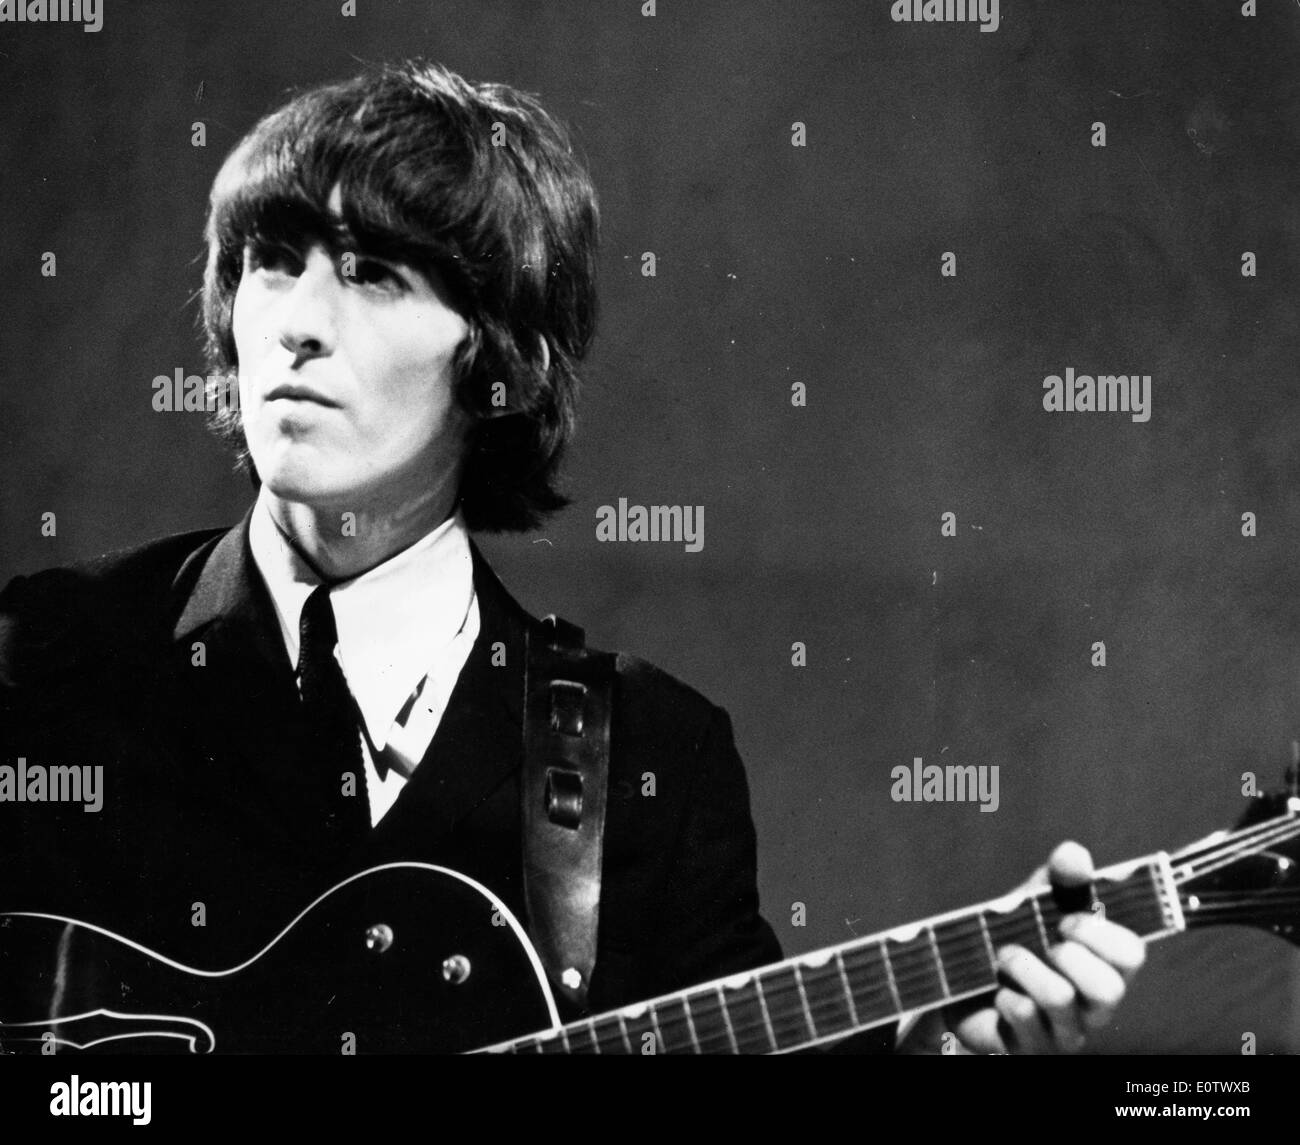 Beatle George Harrison performs at concert - Stock Image